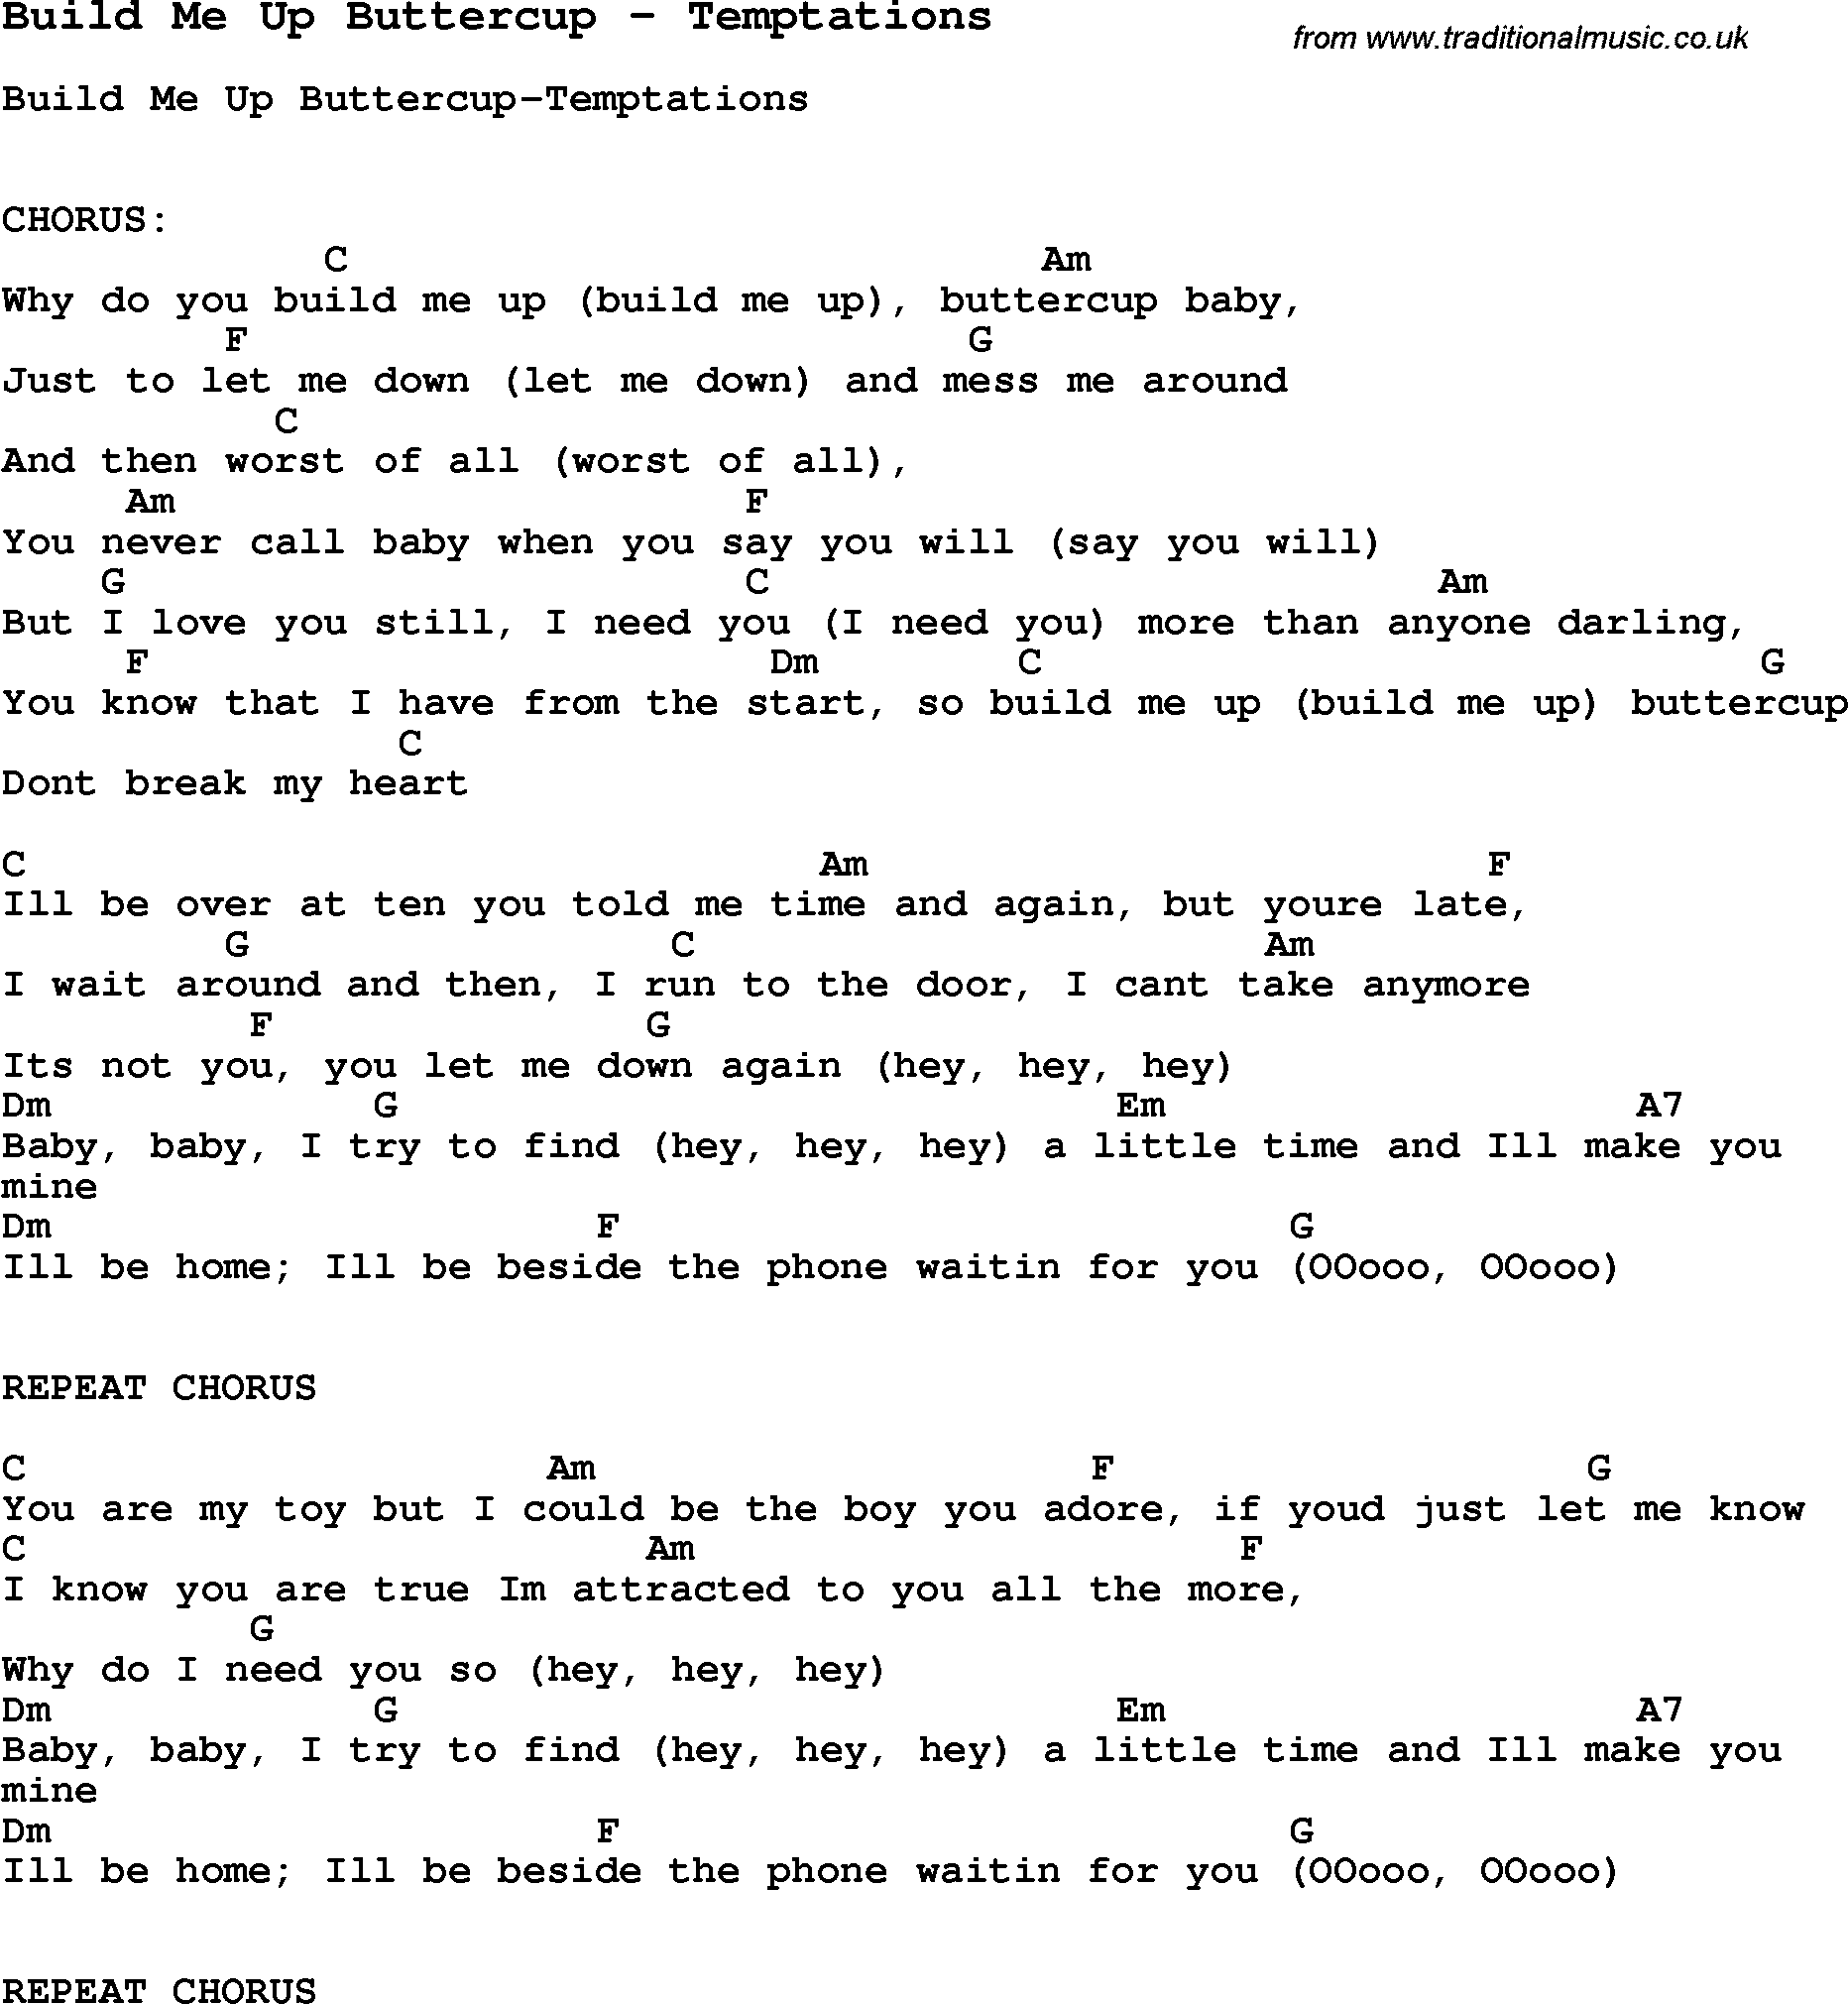 Song build me up buttercup by temptations with lyrics for vocal song build me up buttercup by temptations with lyrics for vocal performance and accompaniment chords hexwebz Gallery